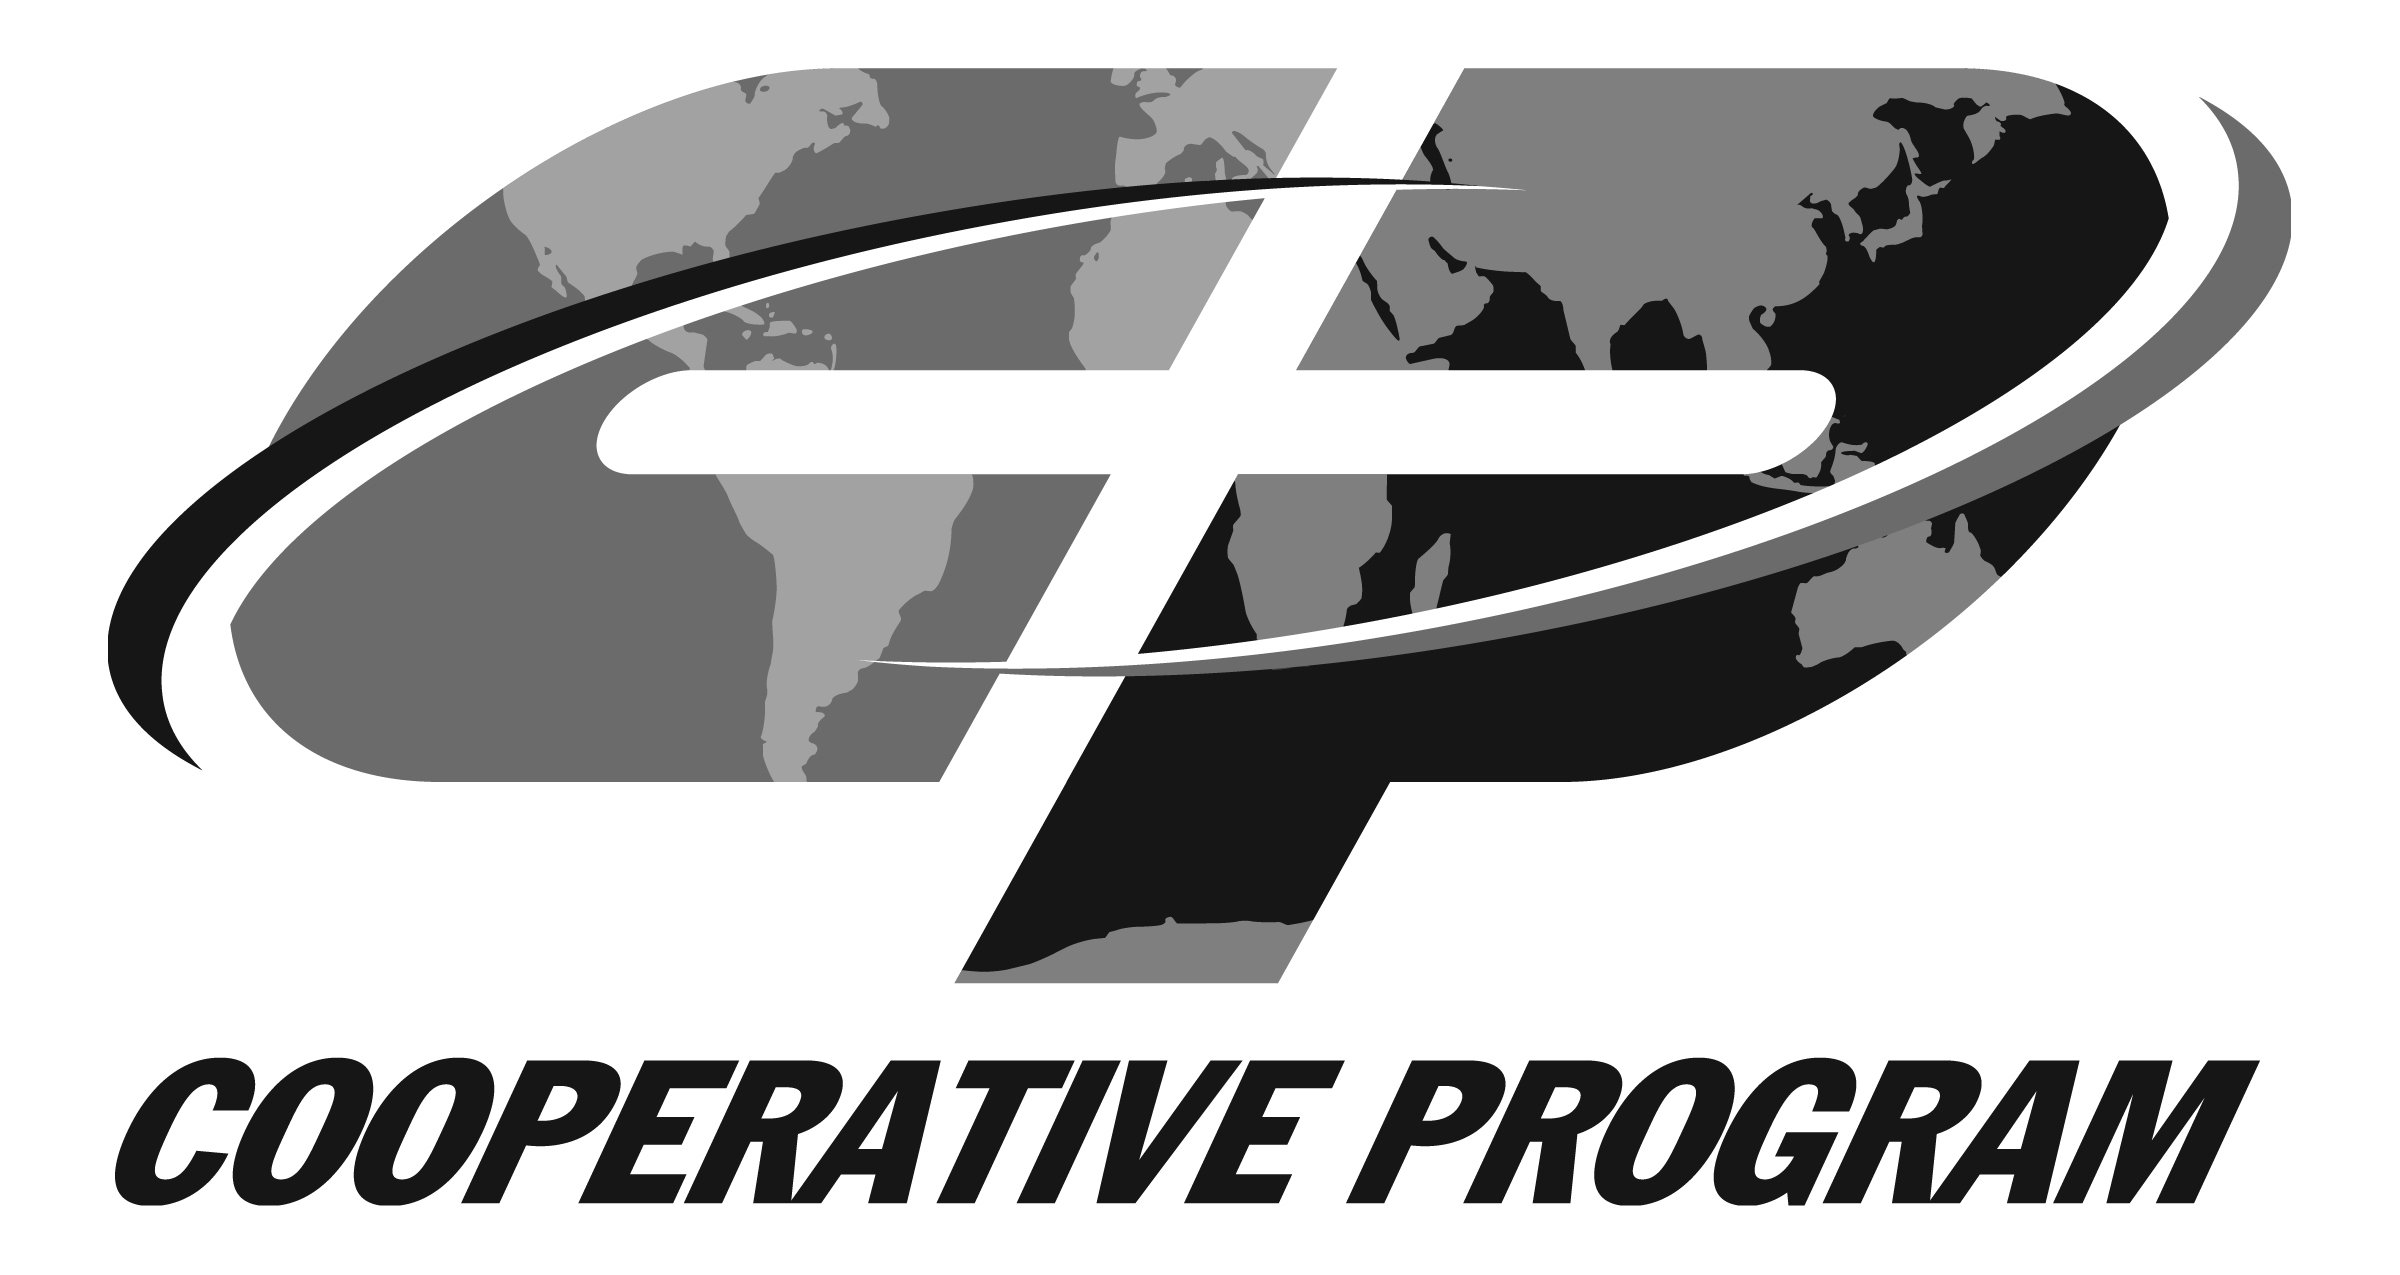 The Cooperative Program is Southern Baptists' unified plan of giving through which cooperating Southern Baptist churches give a percentage of their undesignated receipts in support of their respective state convention and the Southern Baptist Convention missions and ministries.